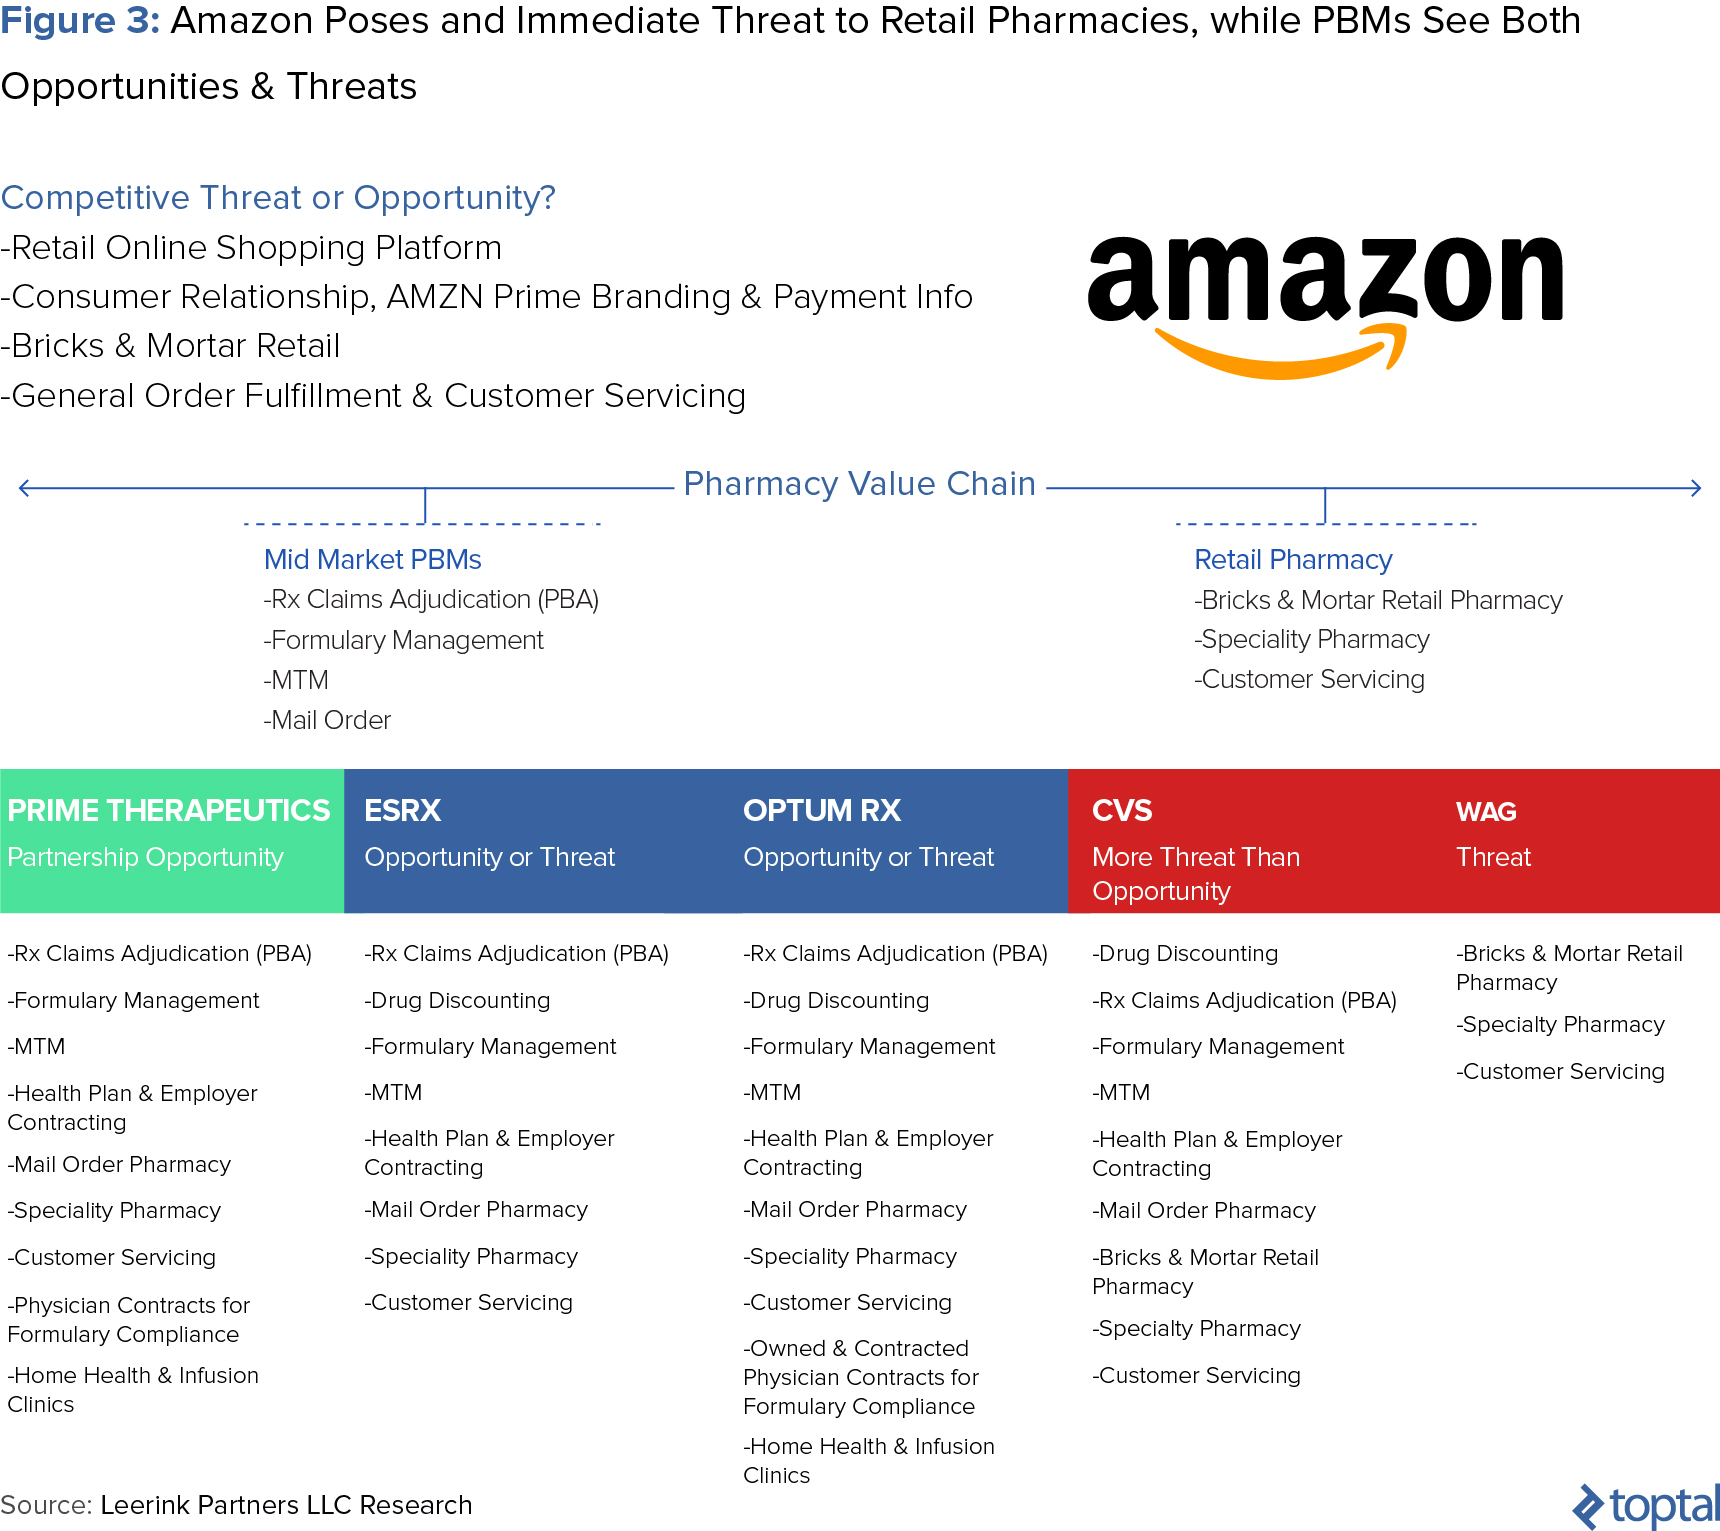 figure 3 amazon poses an immediate threat to retail pharmacies while pbms see both opportunities and threats